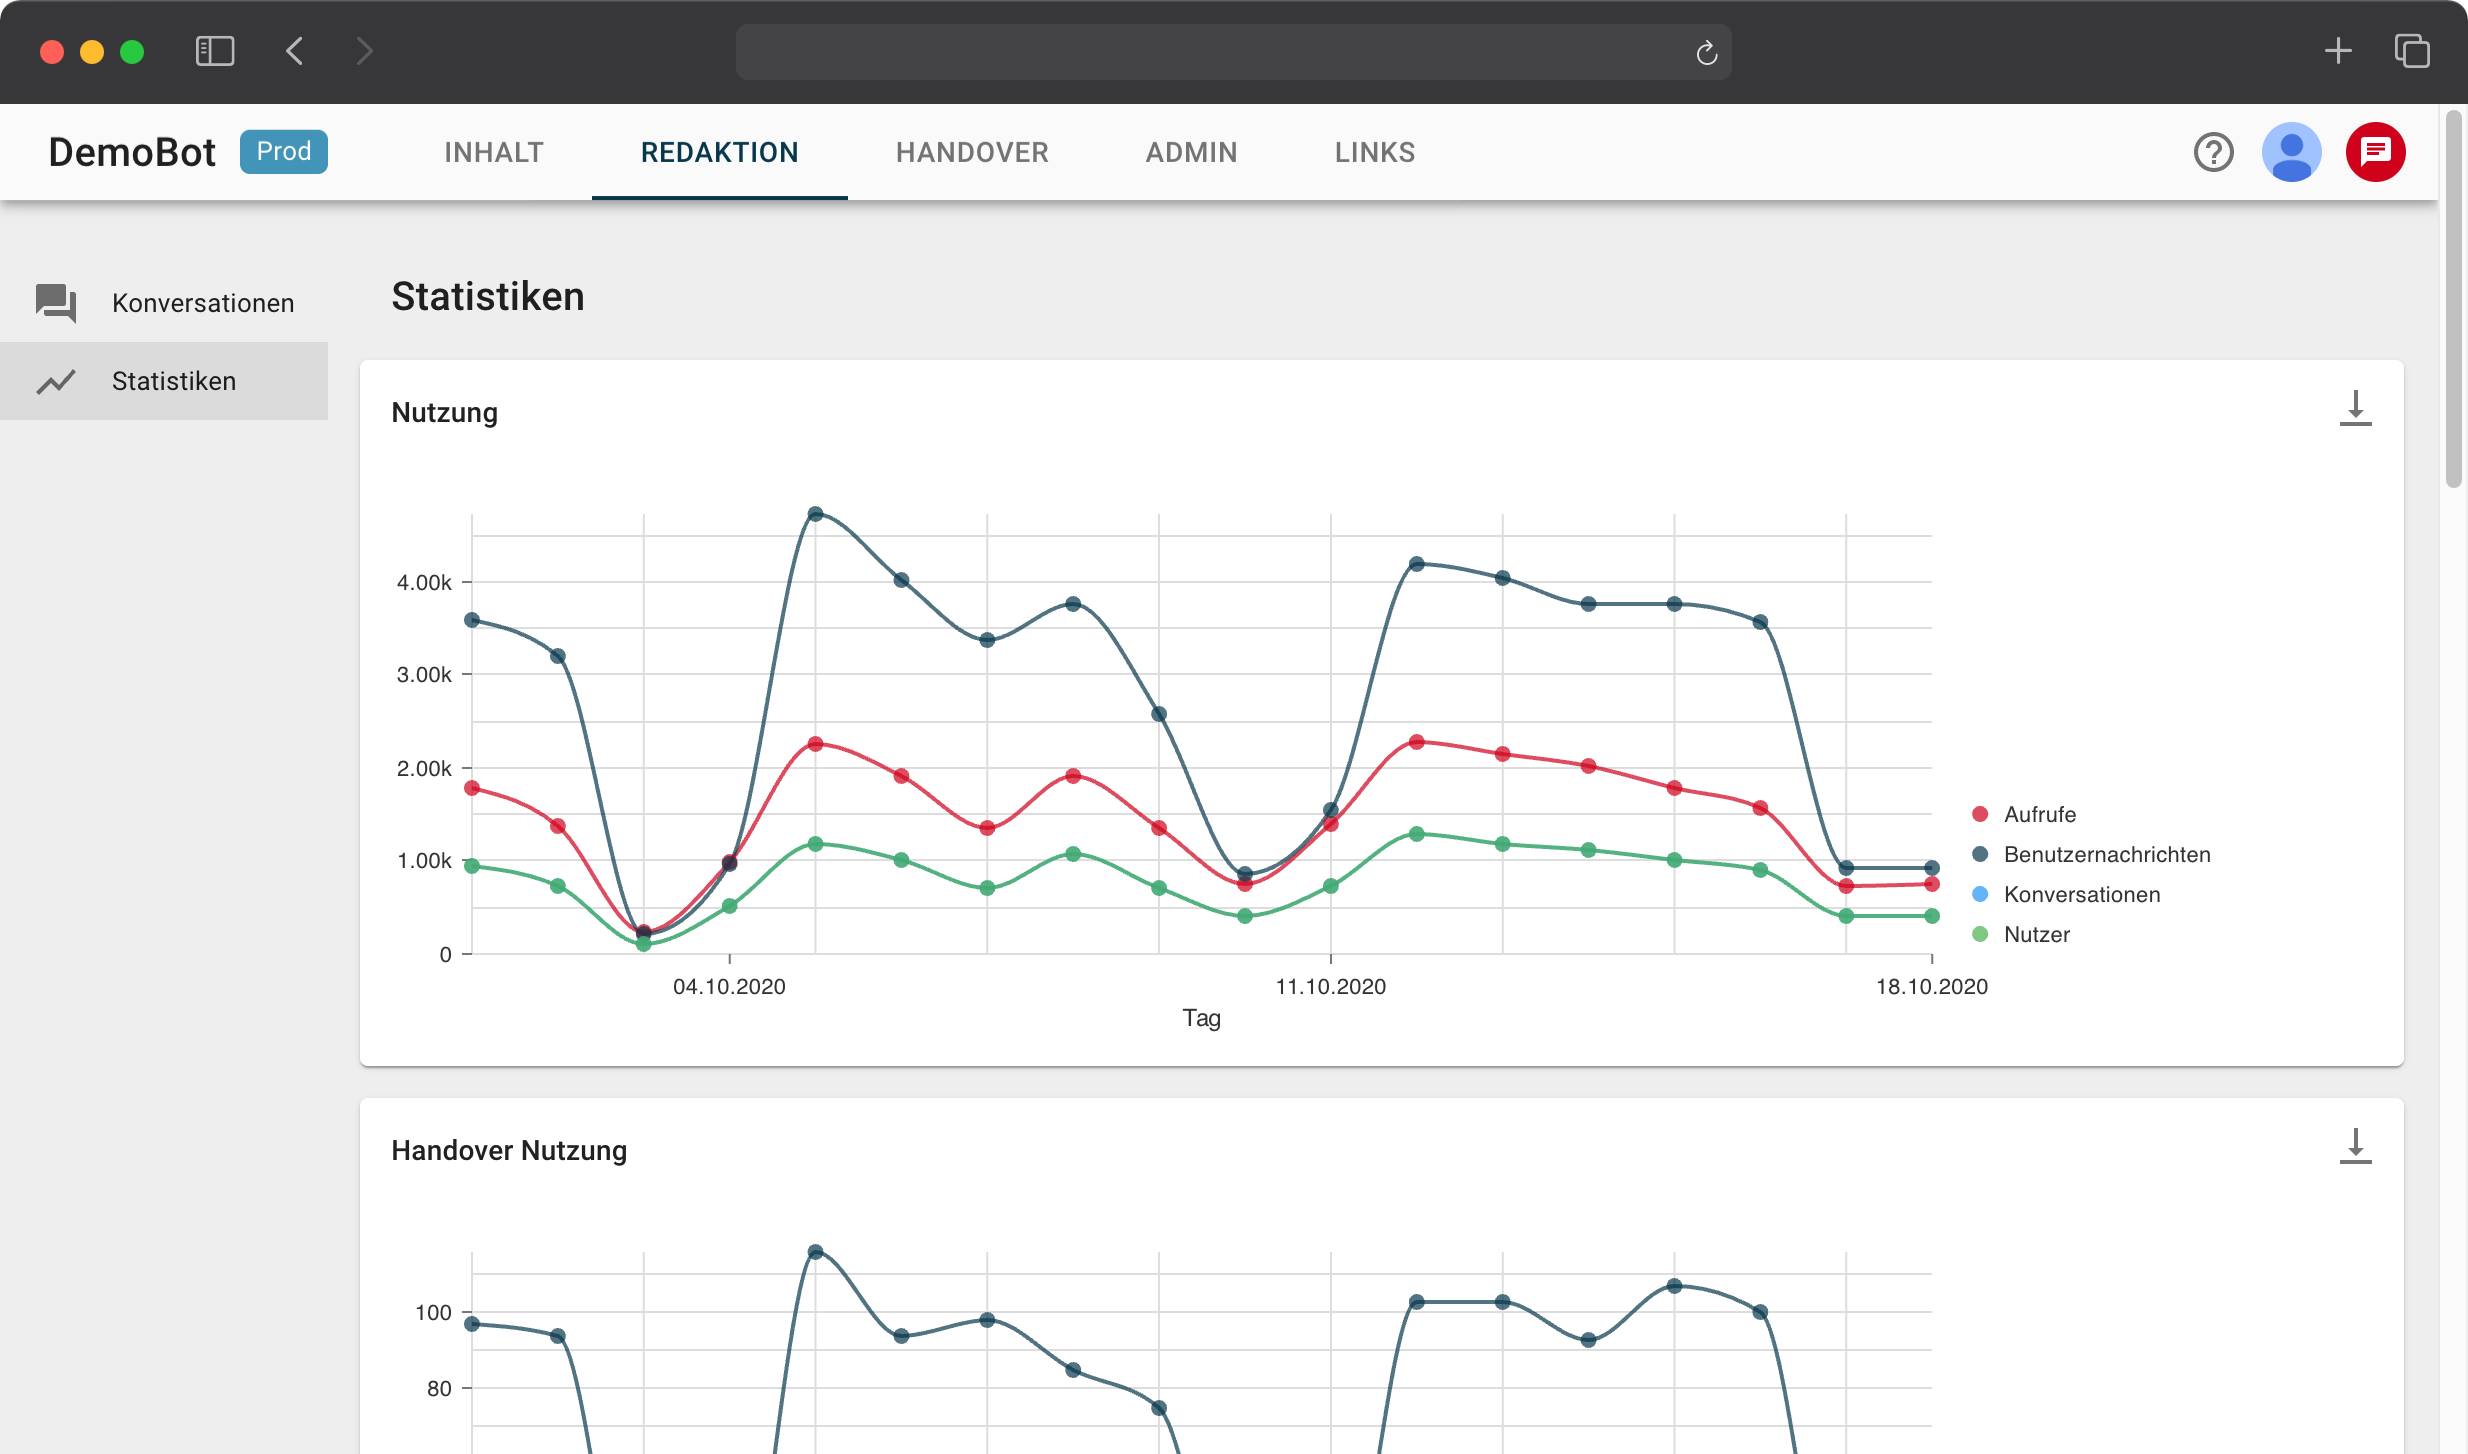 Analytics for key KPIs and content development